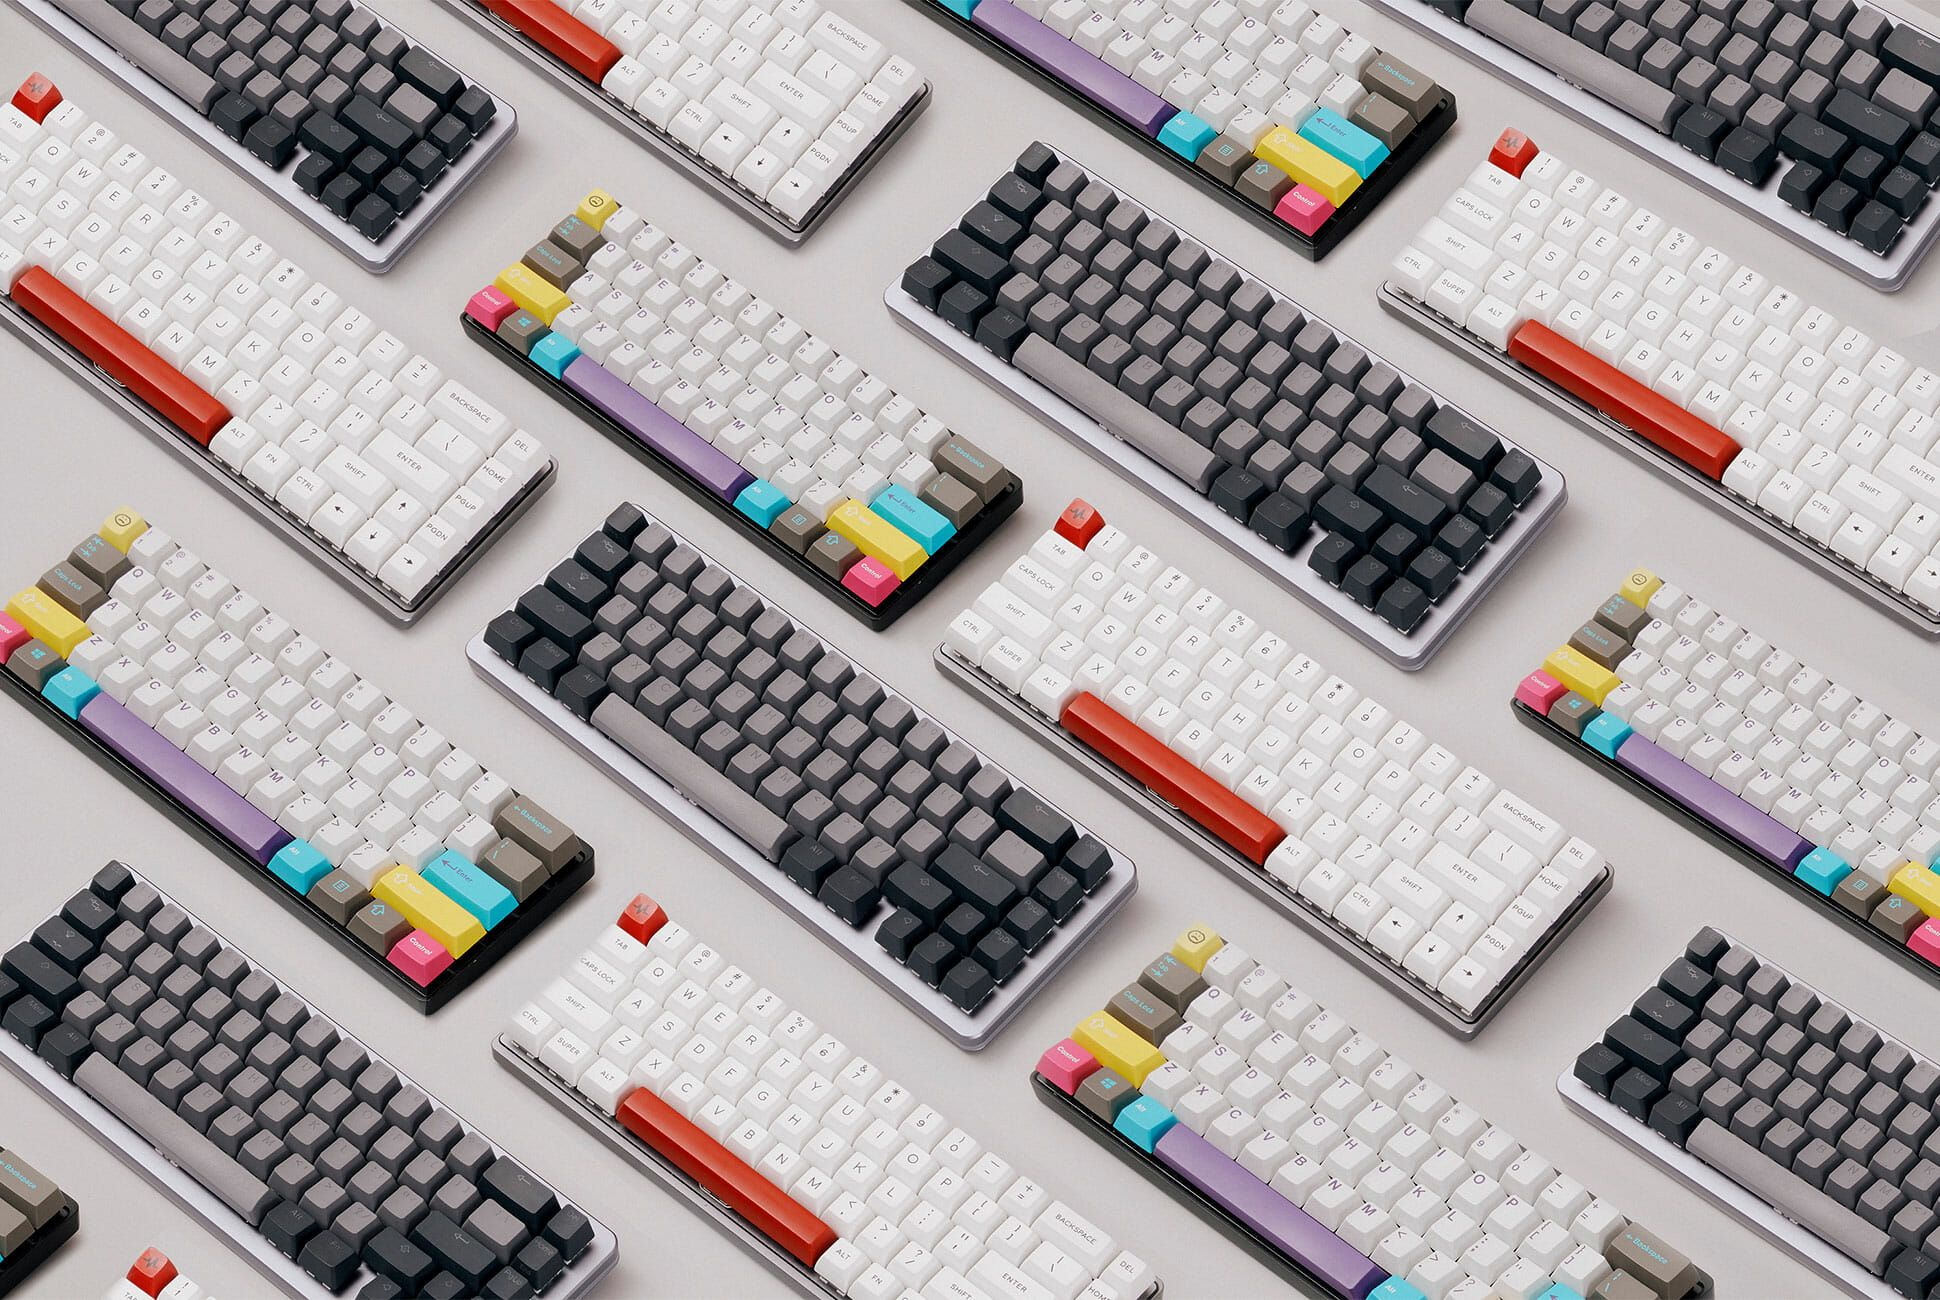 How To Buy A Mechanical Keyboard